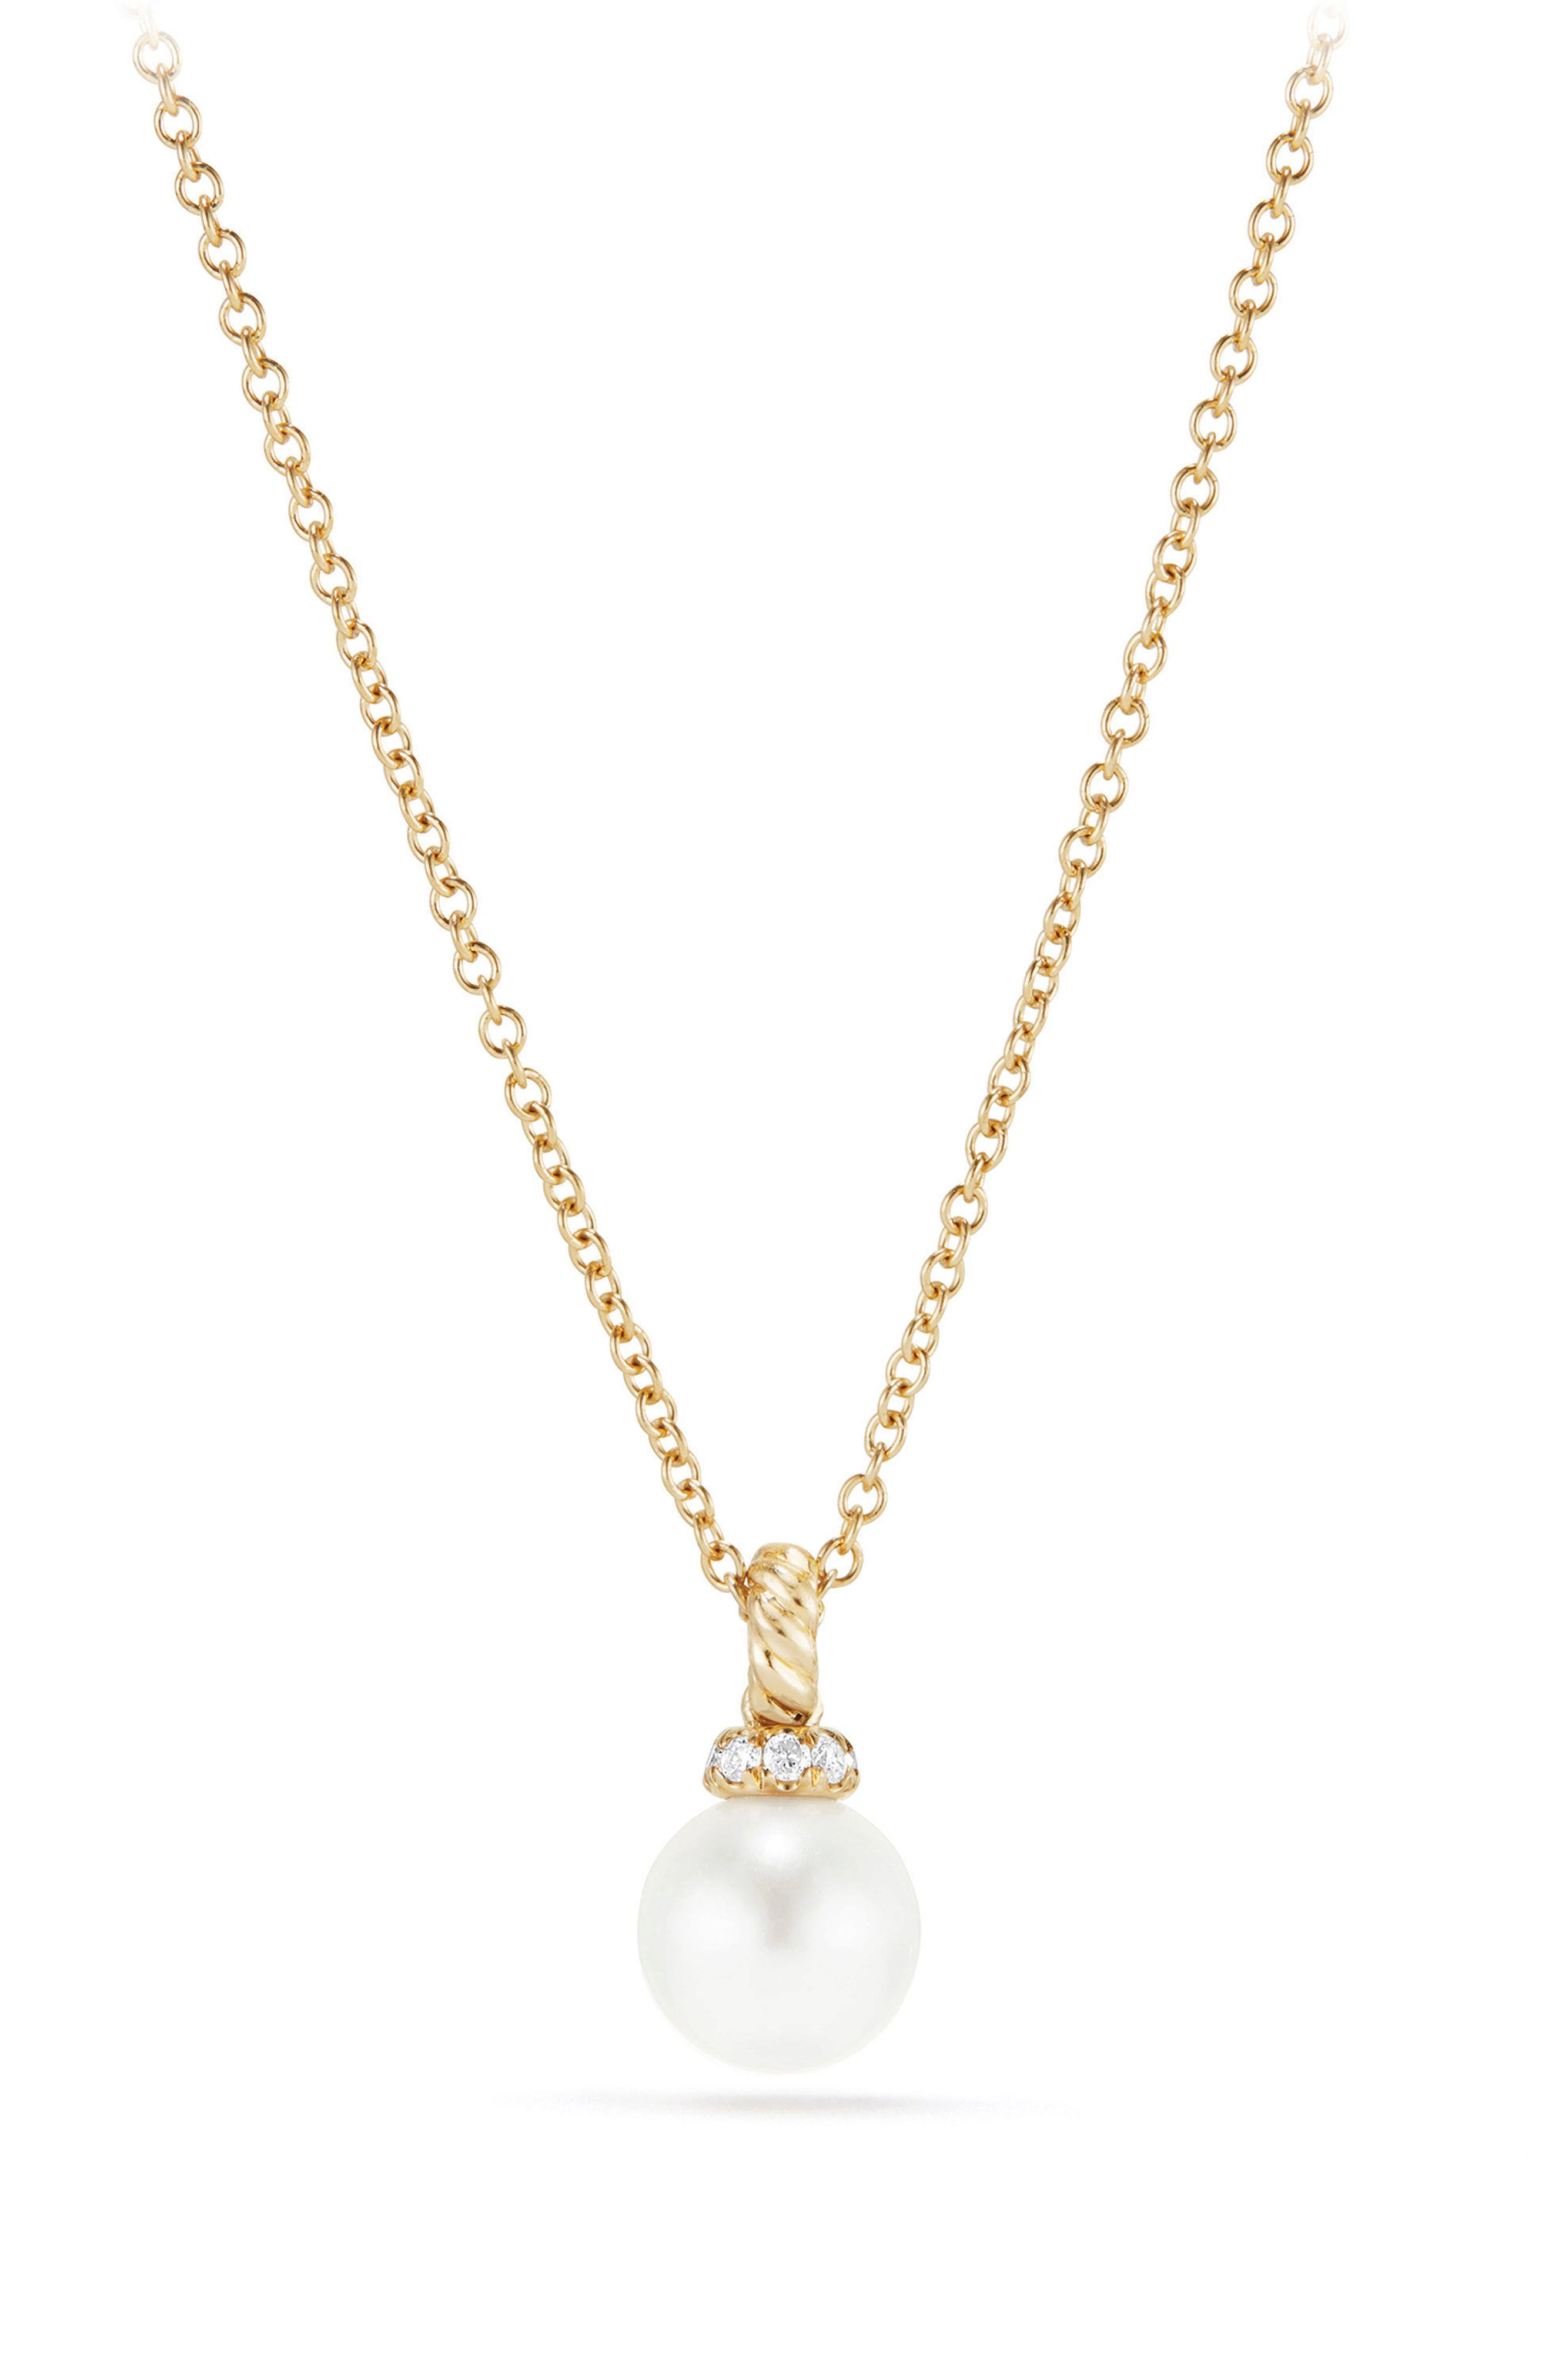 Solari Pendant Necklace with Pearl & Diamonds in 18K Gold,                             Main thumbnail 1, color,                             YELLOW GOLD/ DIAMOND/ PEARL